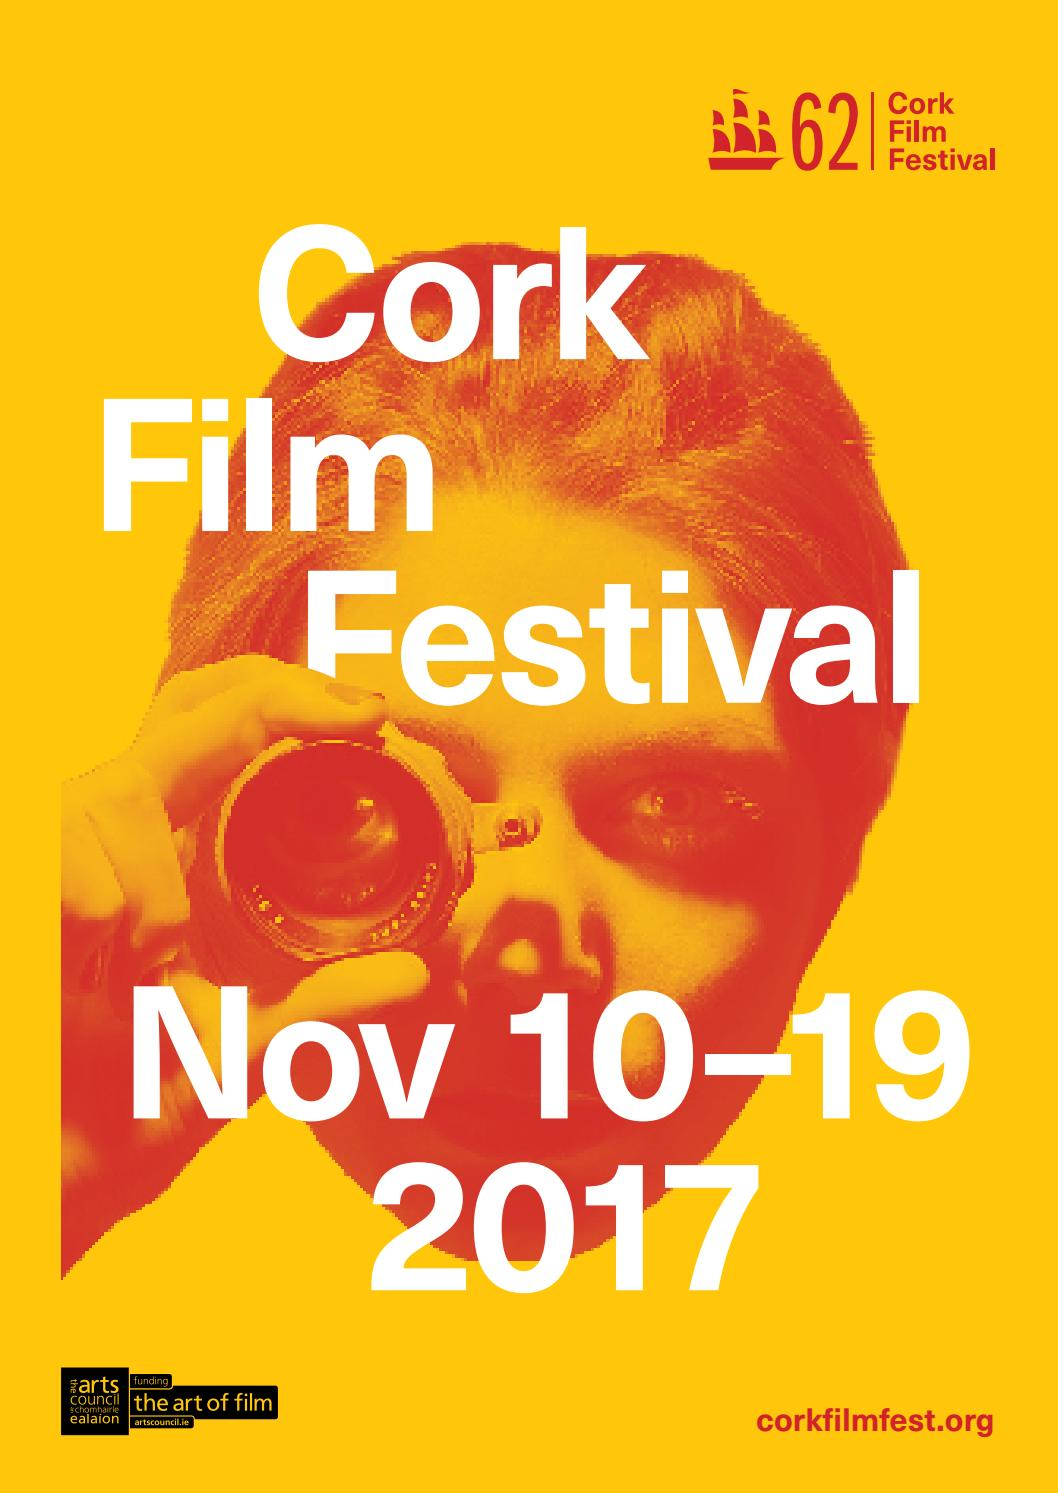 Cork Film Festival 2017 Brochure by Cork Film Festival - issuu